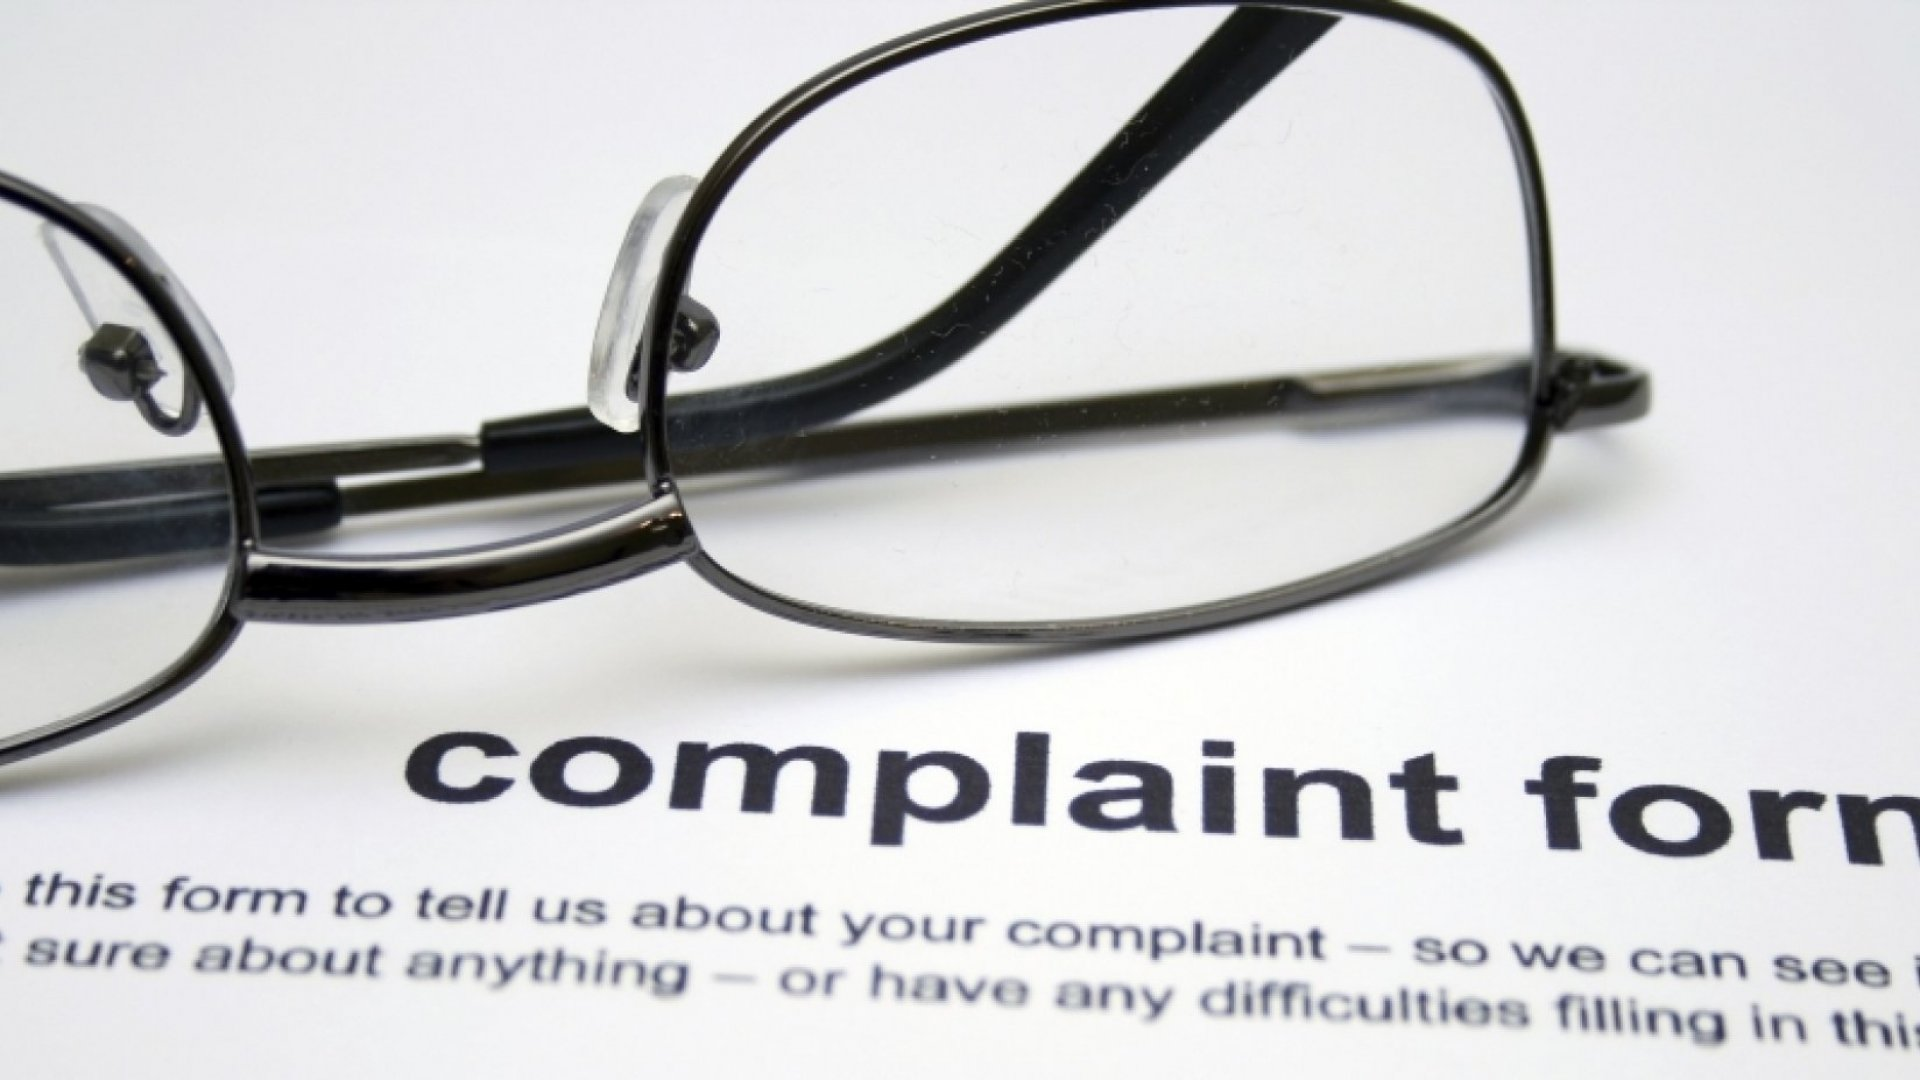 The Hatrix: How to Resolve Customer Complaints Fast